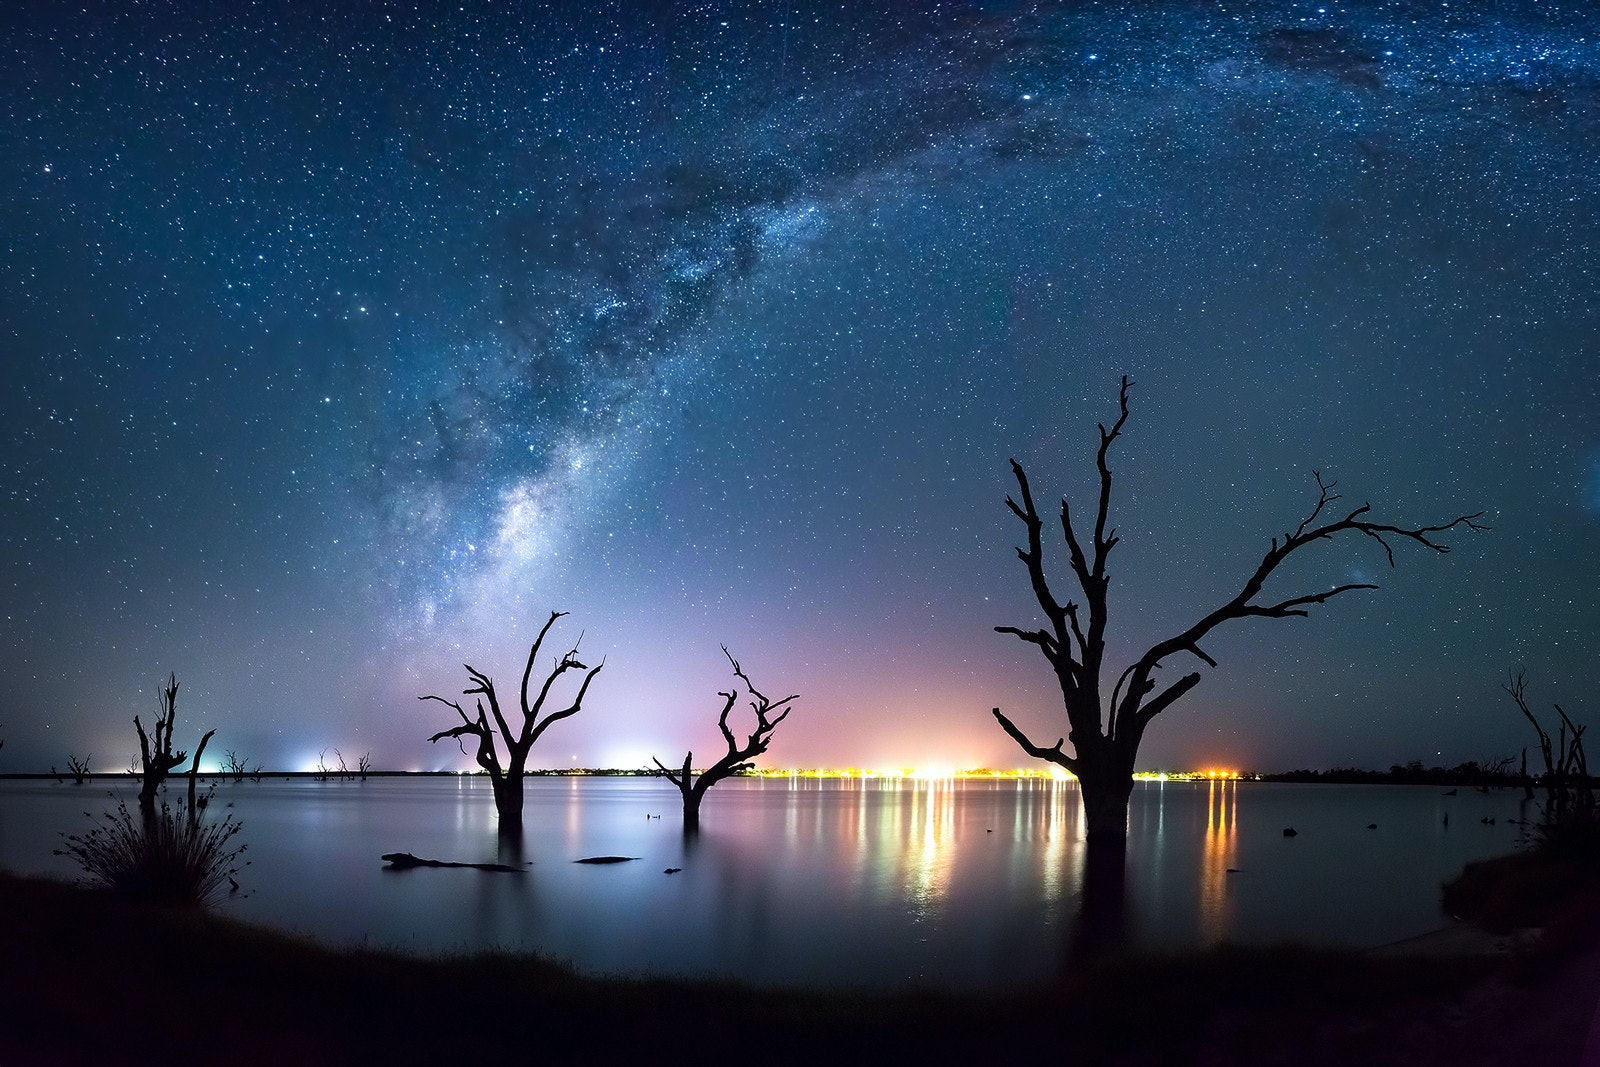 Night Terror - Lake Bonney, SA